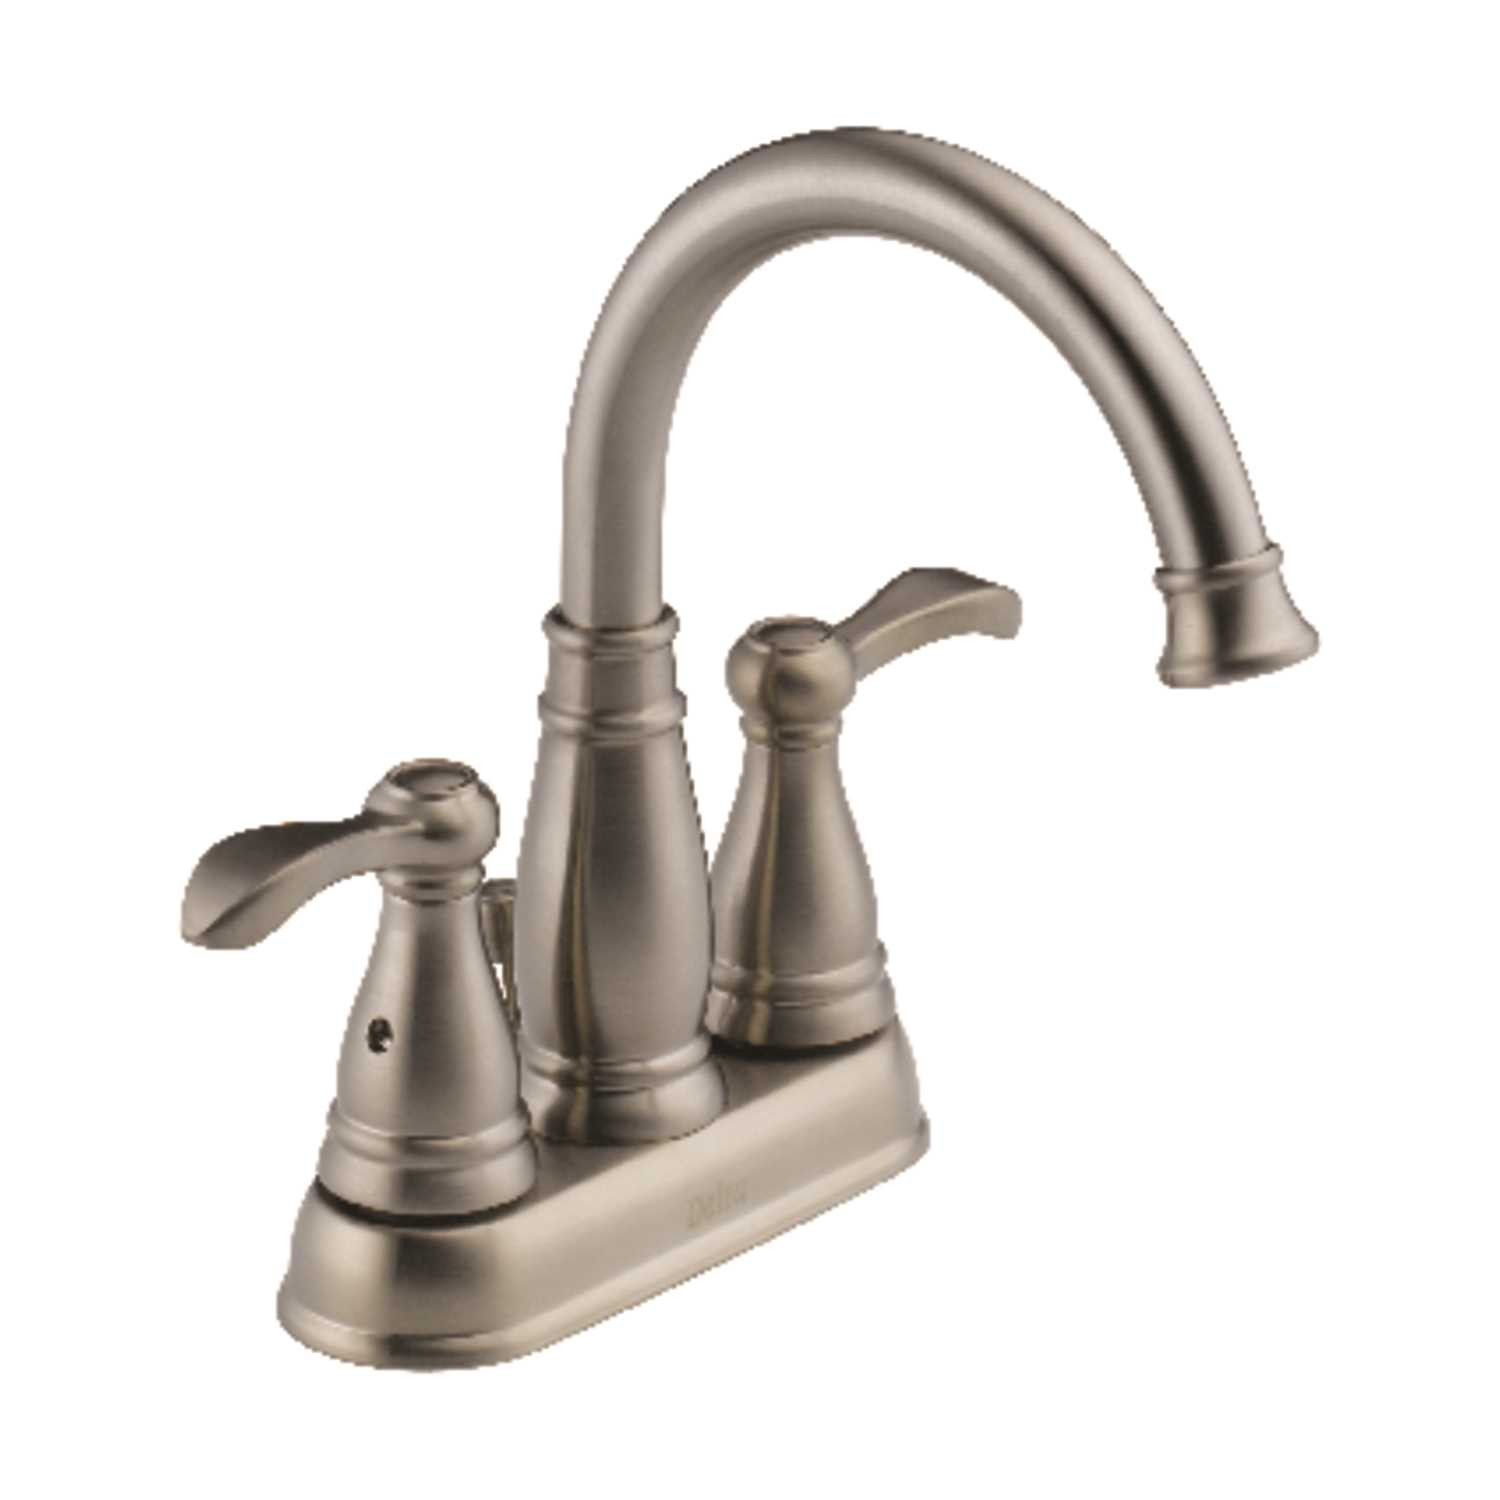 Ace Hardware Bathroom Faucets  Delta Porter Two Handle Lavatory Faucet 4 in Brushed